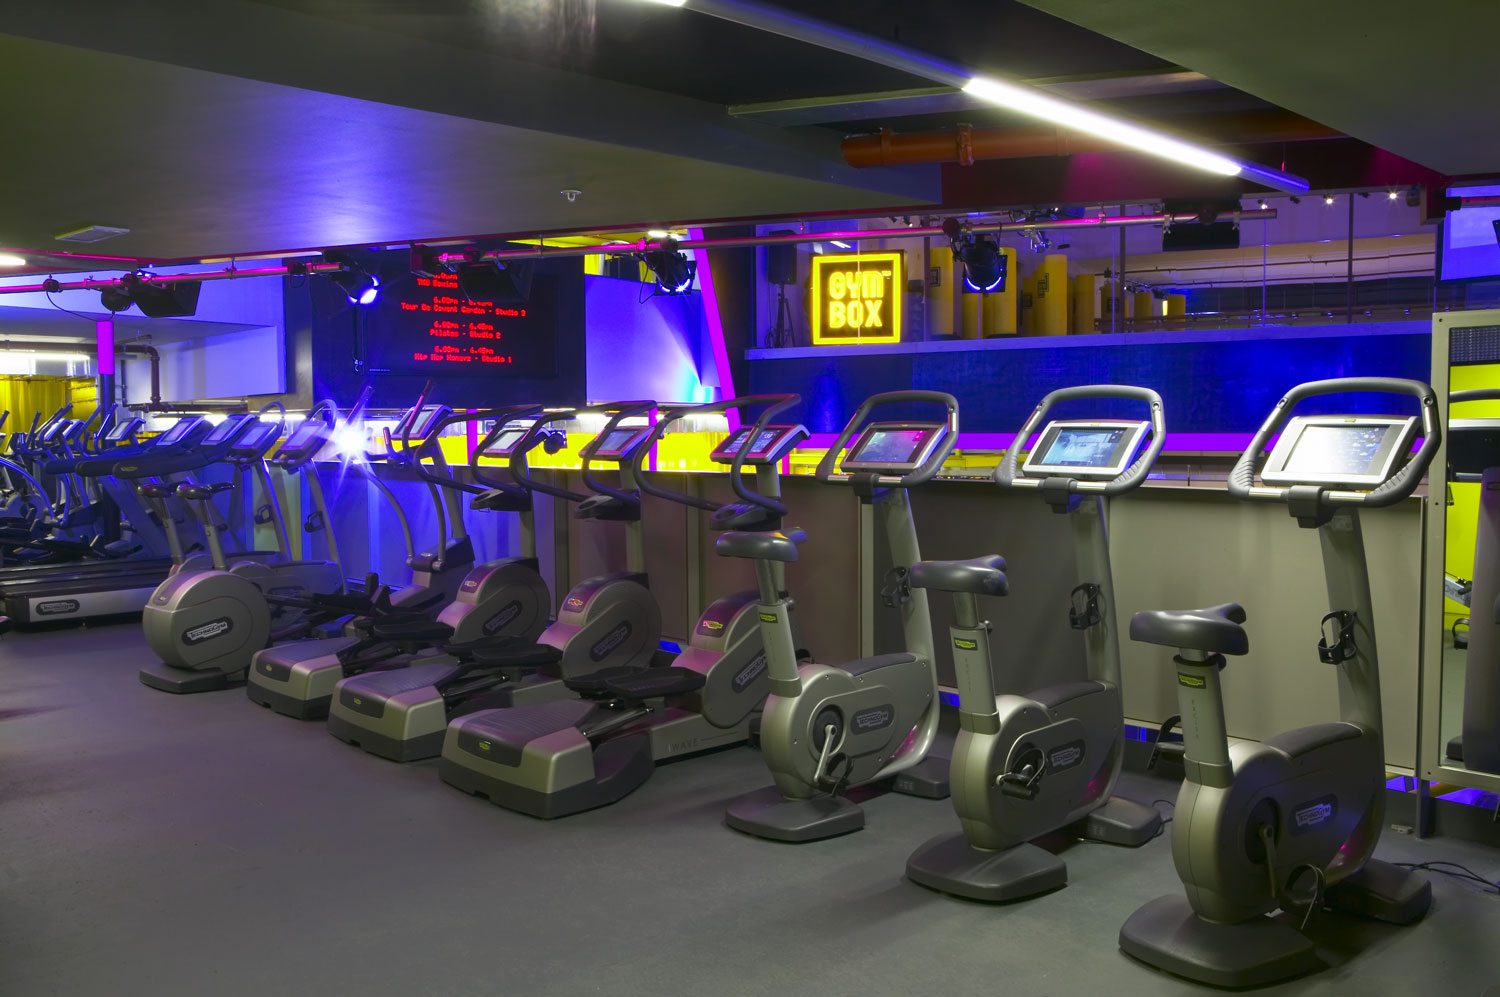 Gymbox Covent Garden, London spinning bike zone | Photographer Interiors | Commercial Professional Photographer